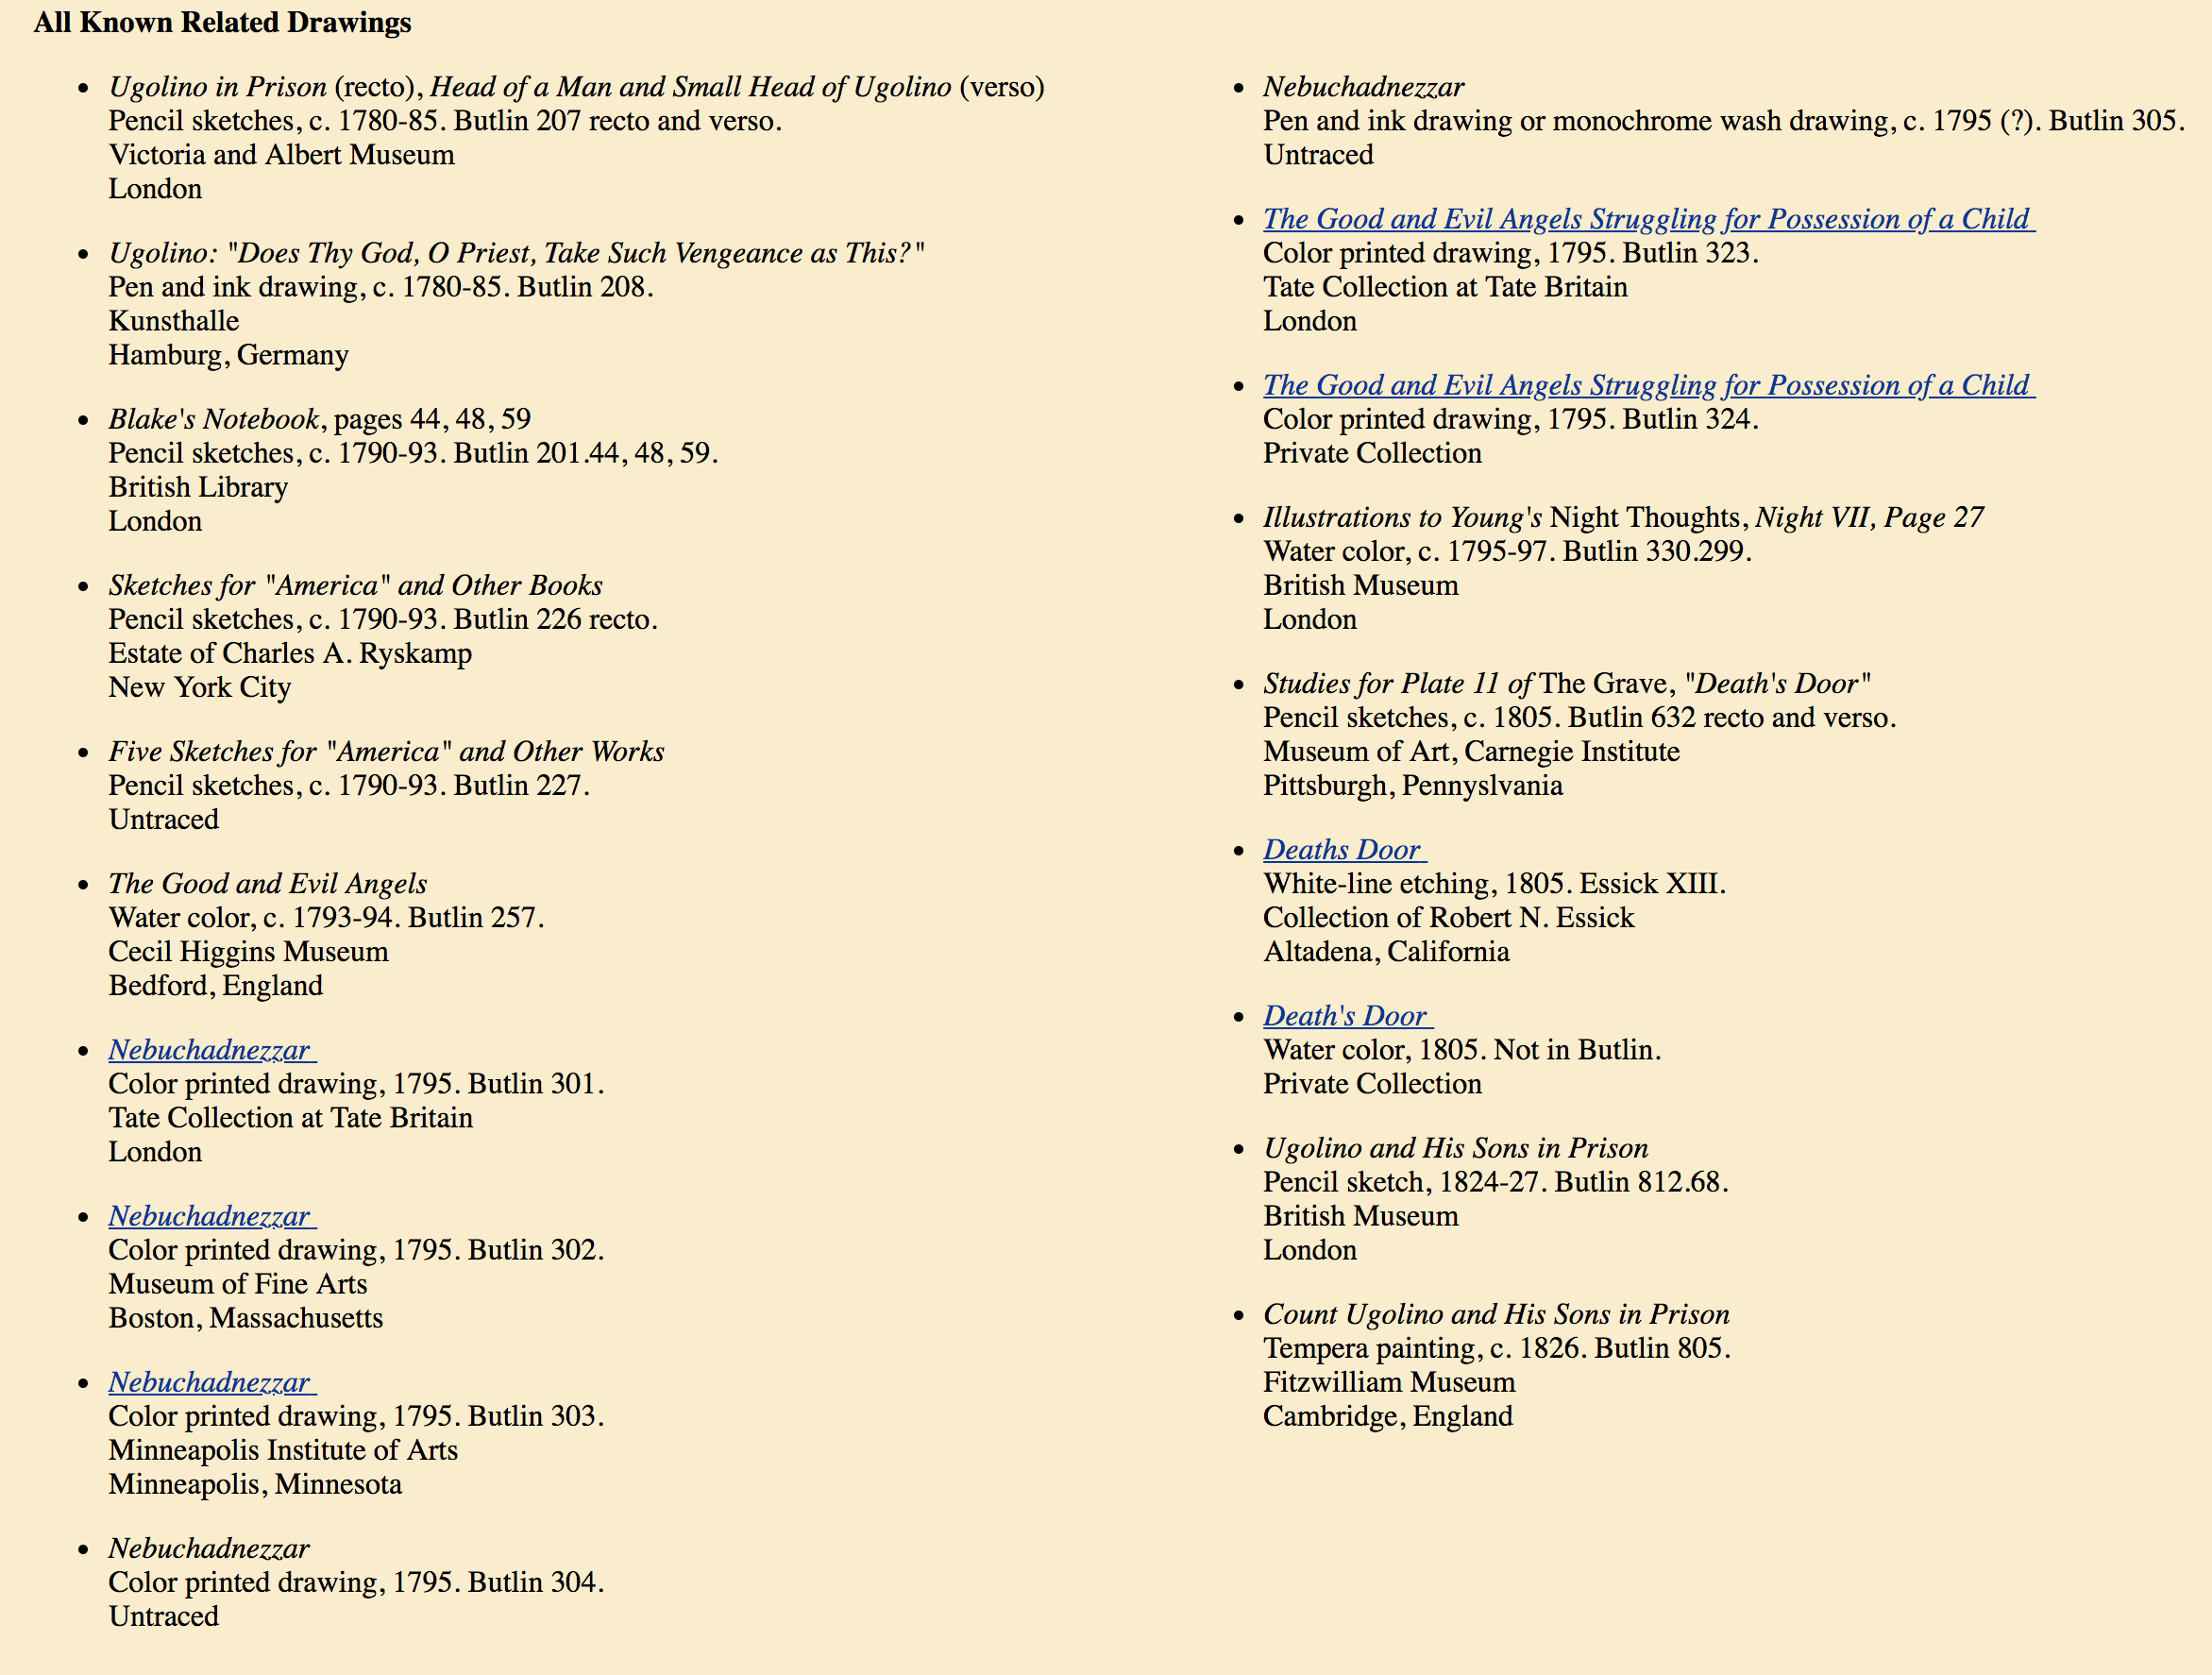 DHQ: Digital Humanities Quarterly: All Relate to Art: The